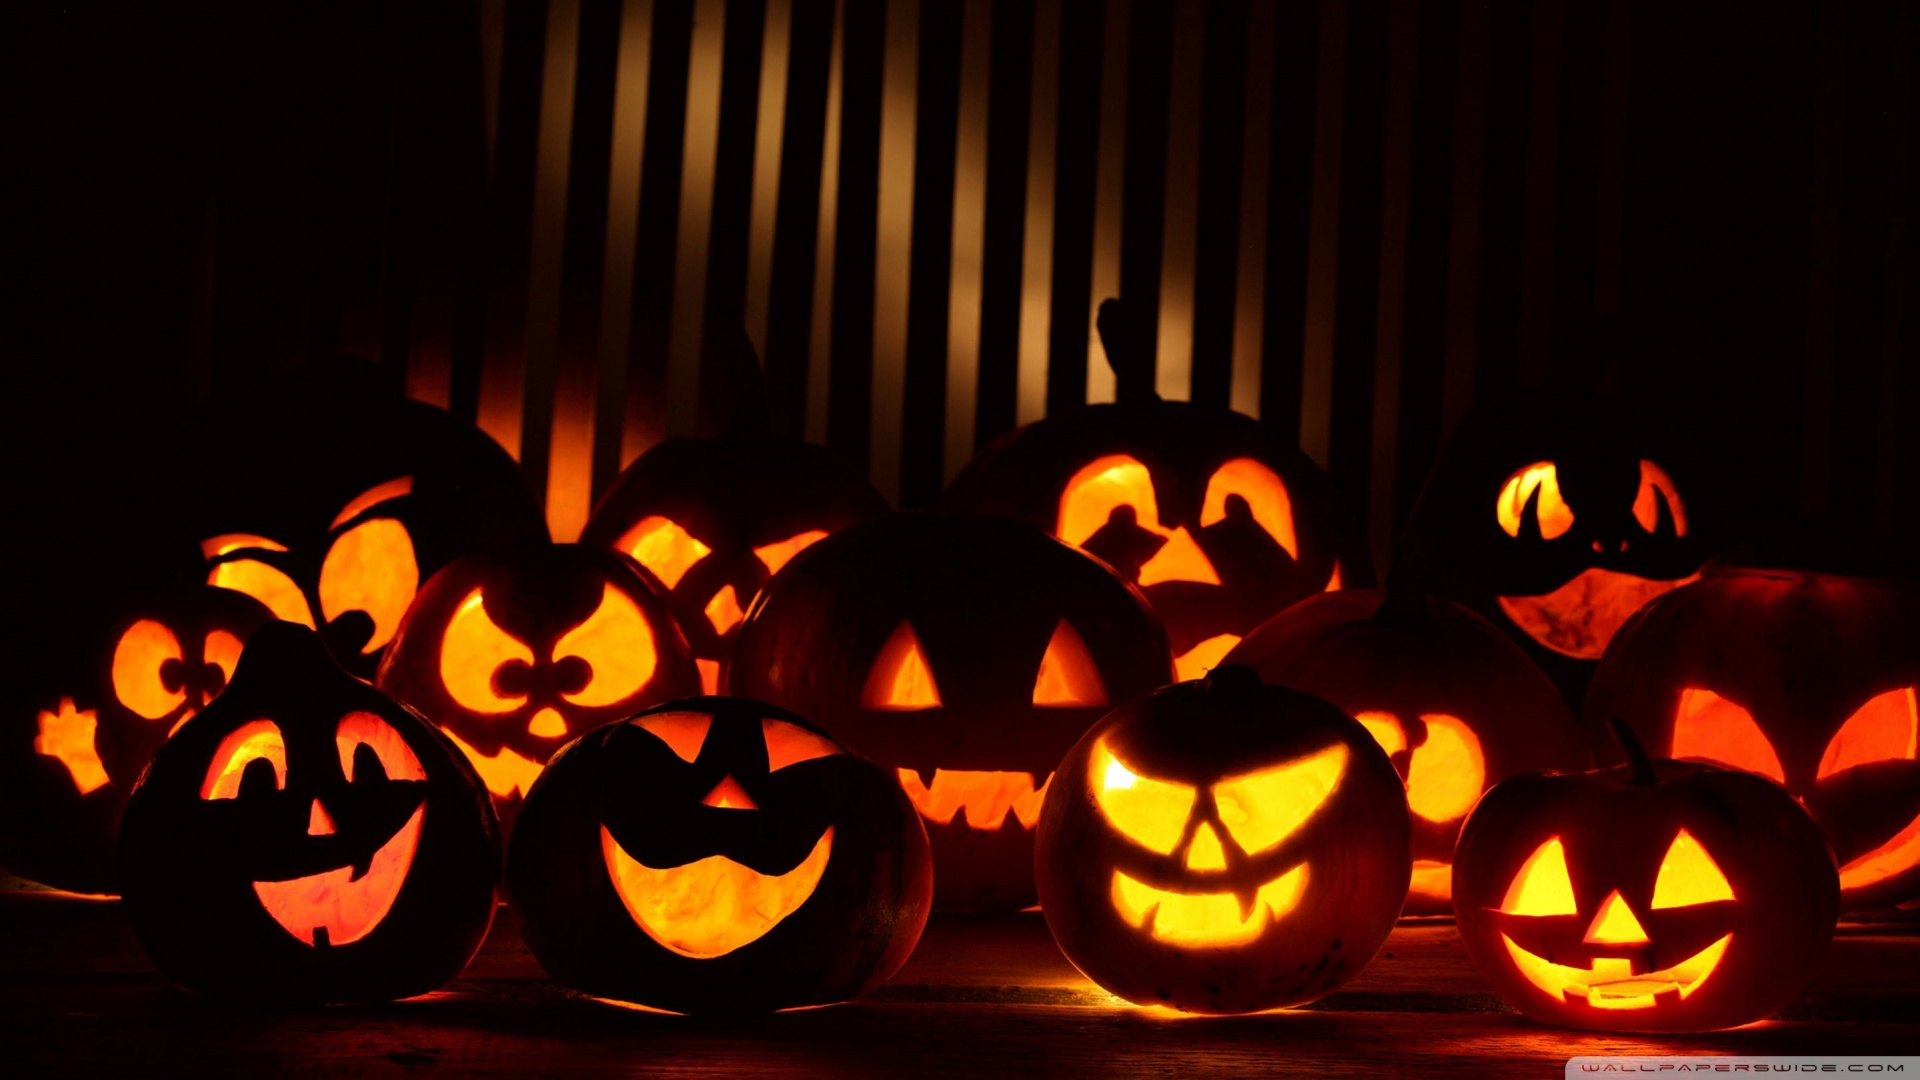 happy halloween wallpapers - photo #19